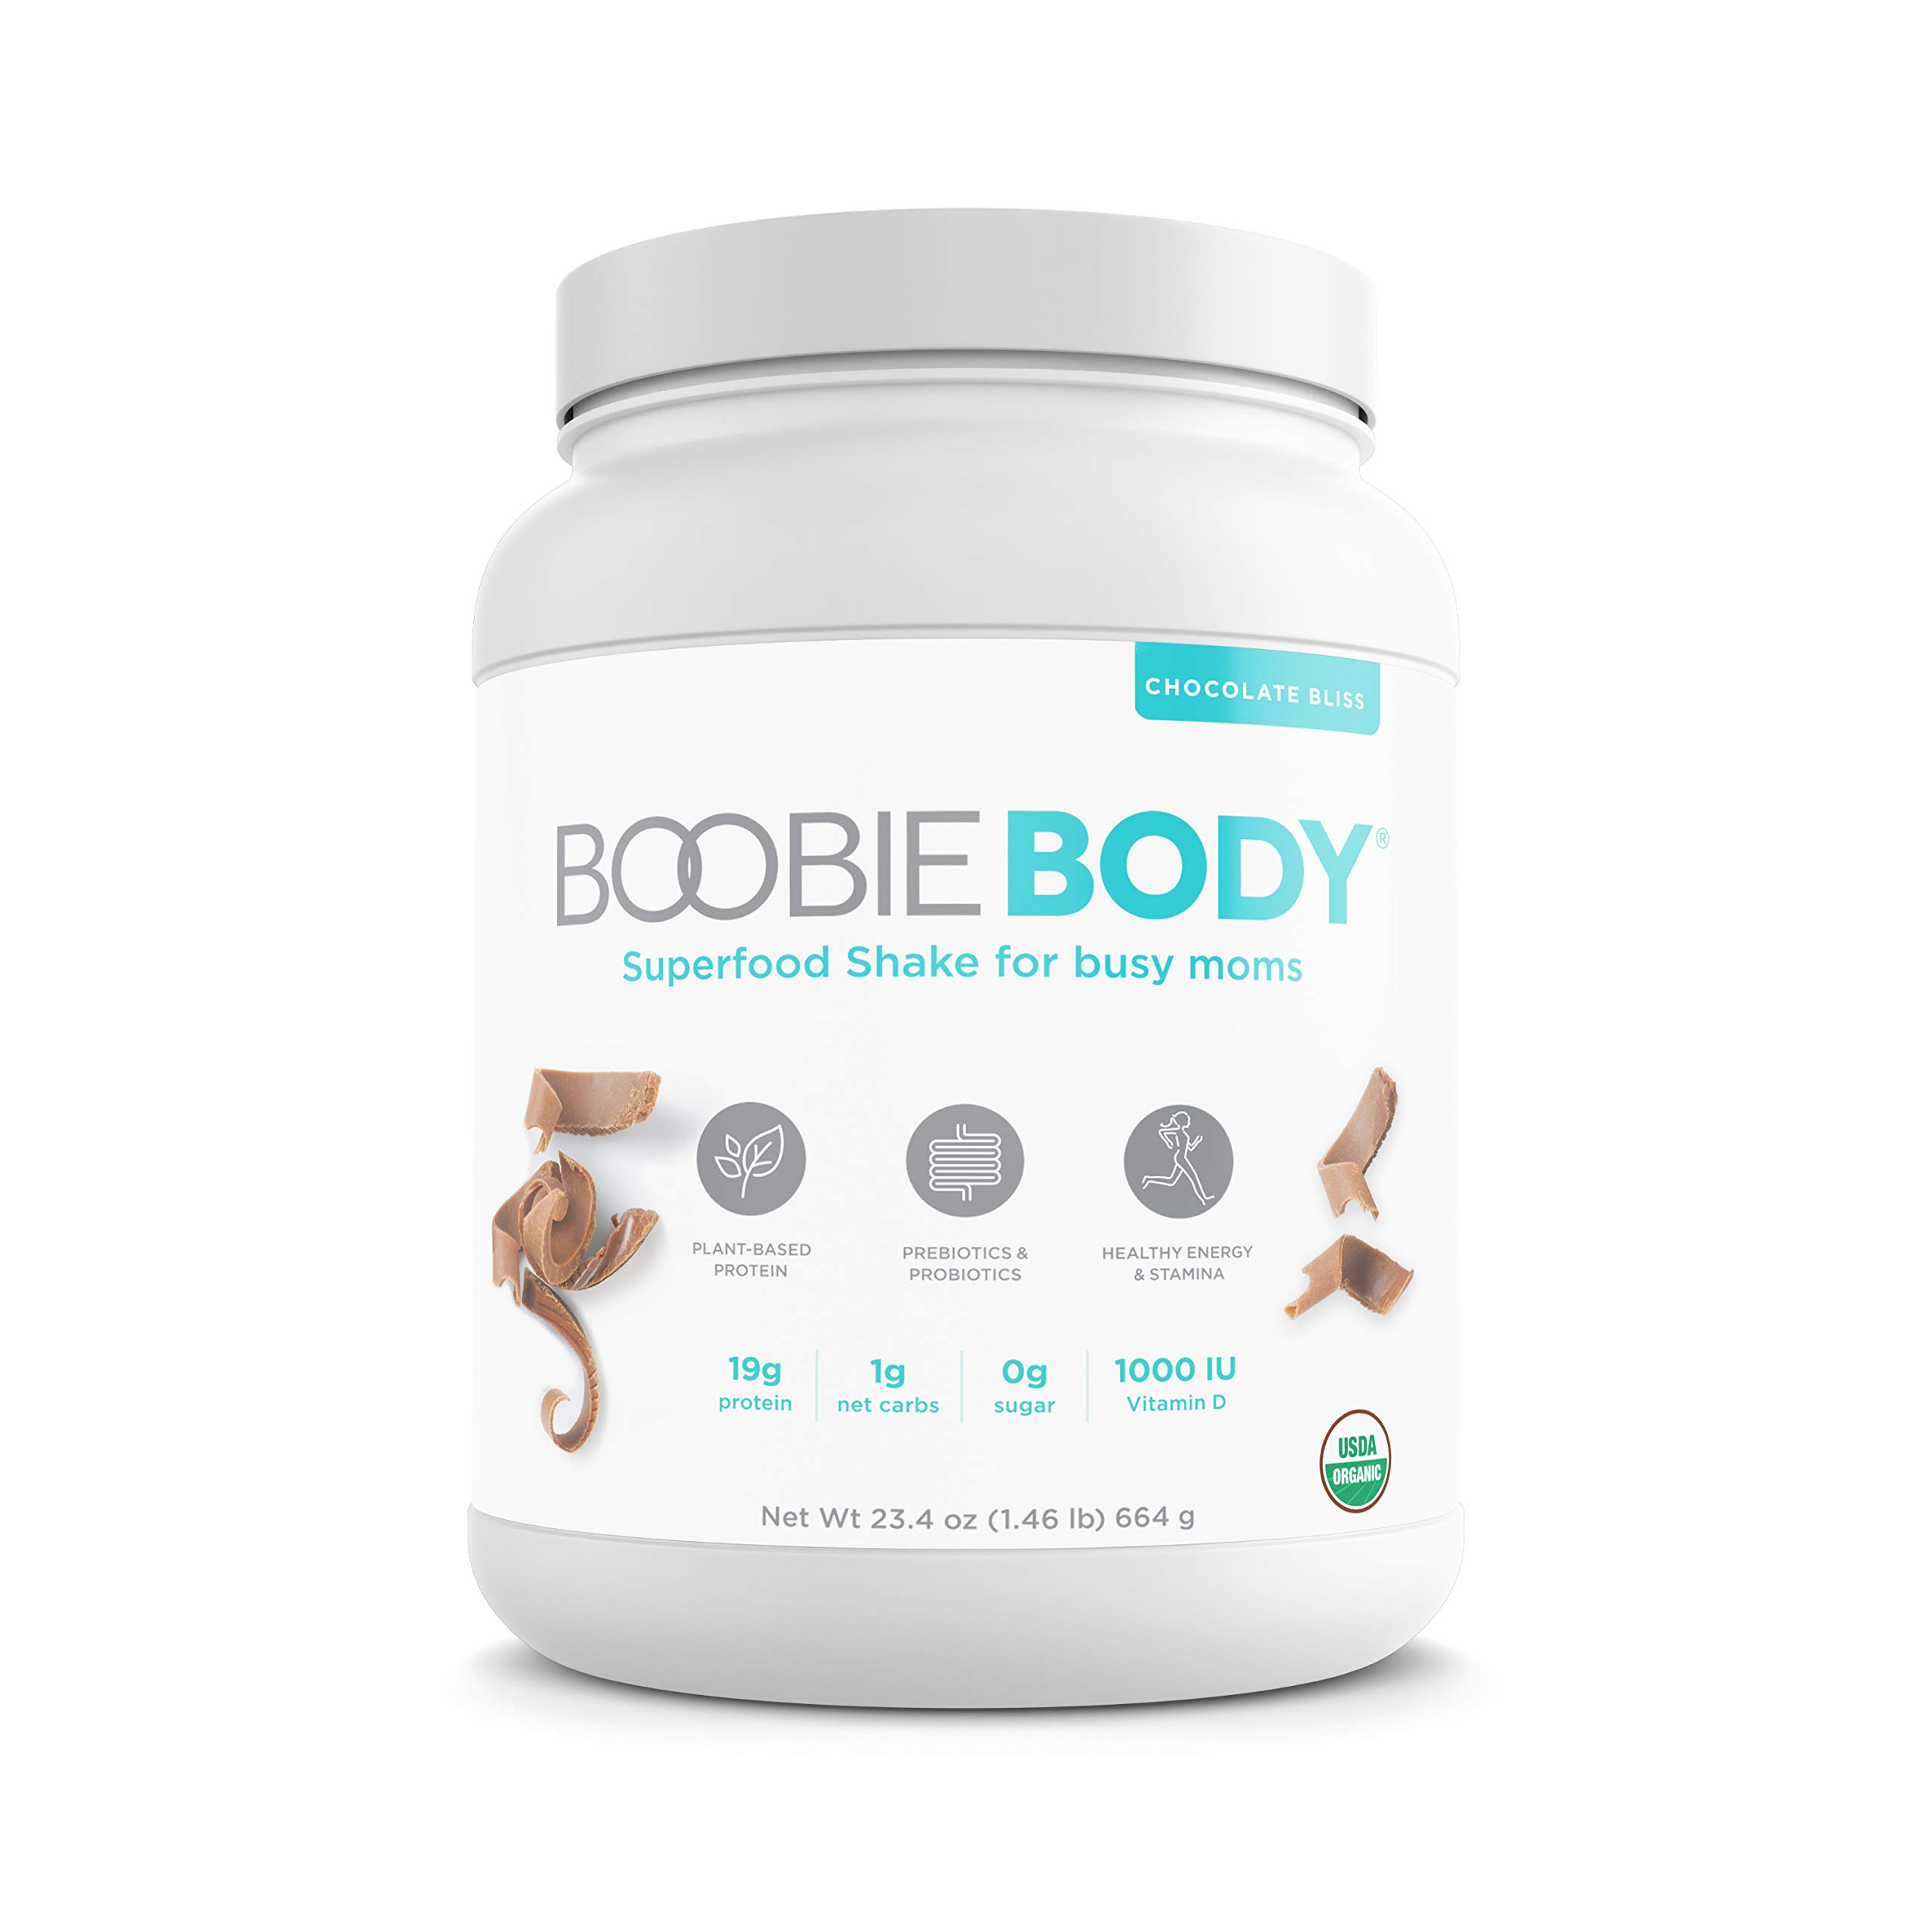 Boobie BODY Organic Superfood Shake, Protein-Plant-Based, Prebiotics & Probiotics, 20 servings, Chocolate Bliss, 23.4 oz. by Boobie Bar